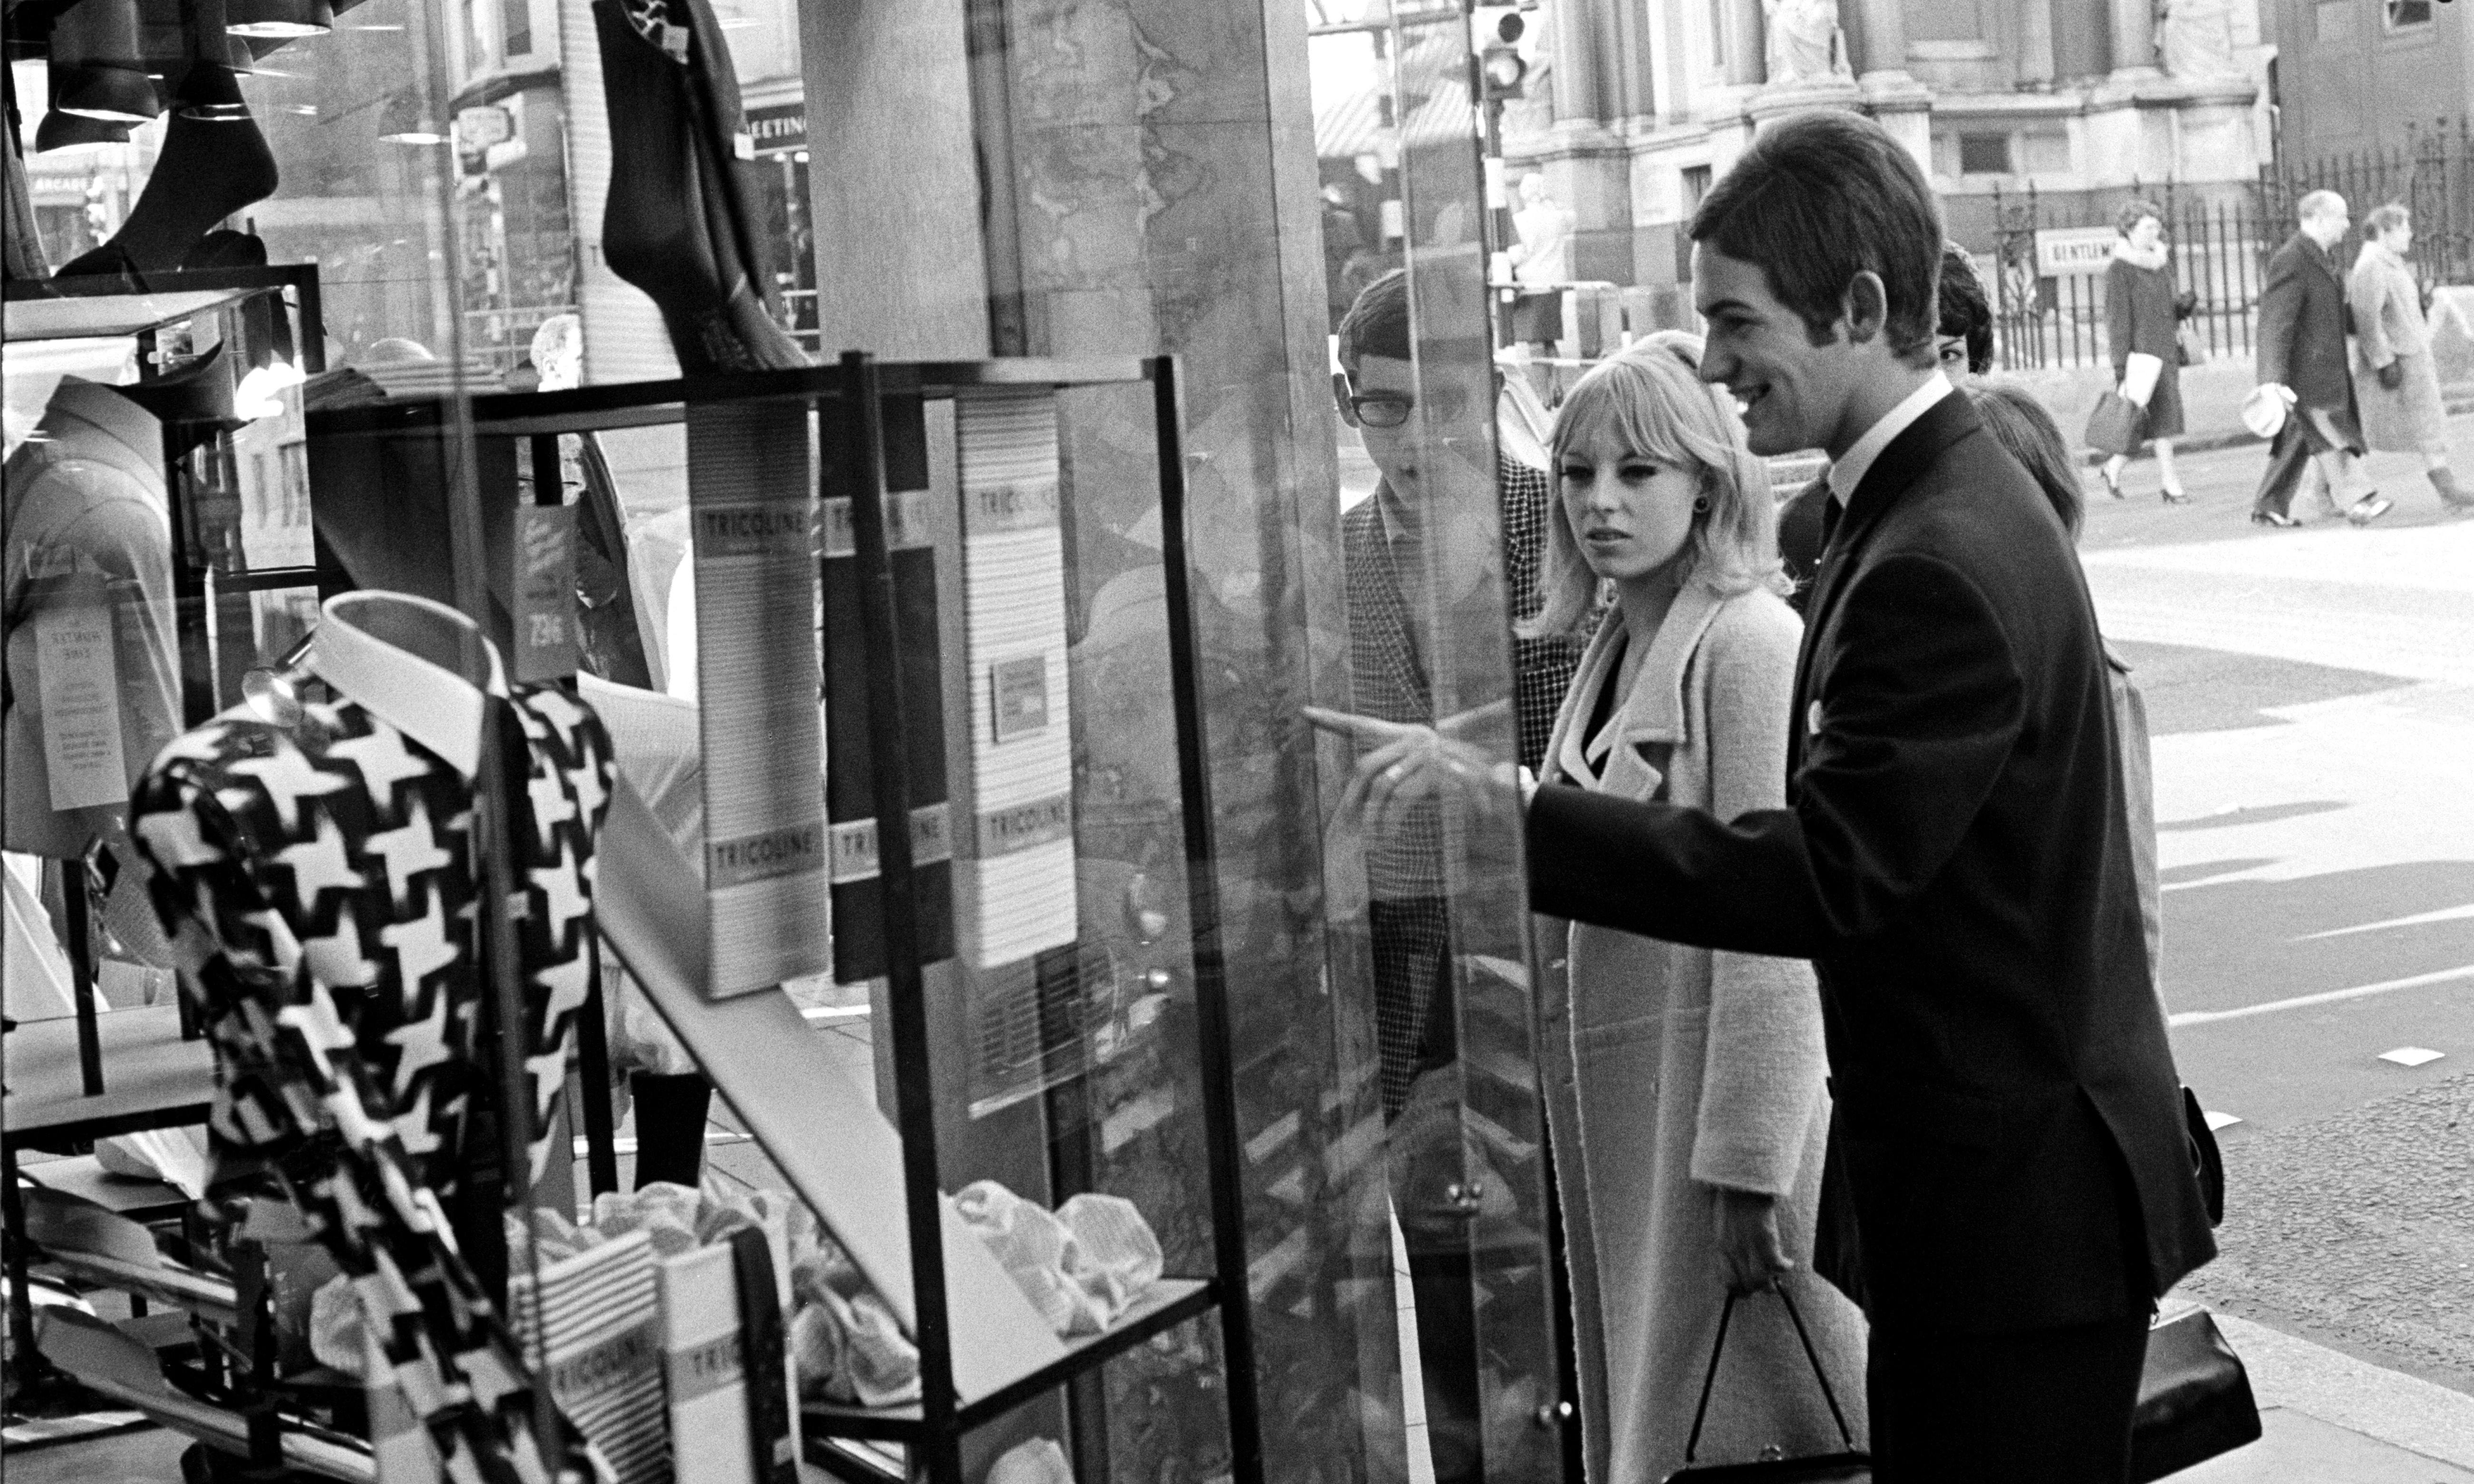 From the archive: An American's love letter to London from 1965